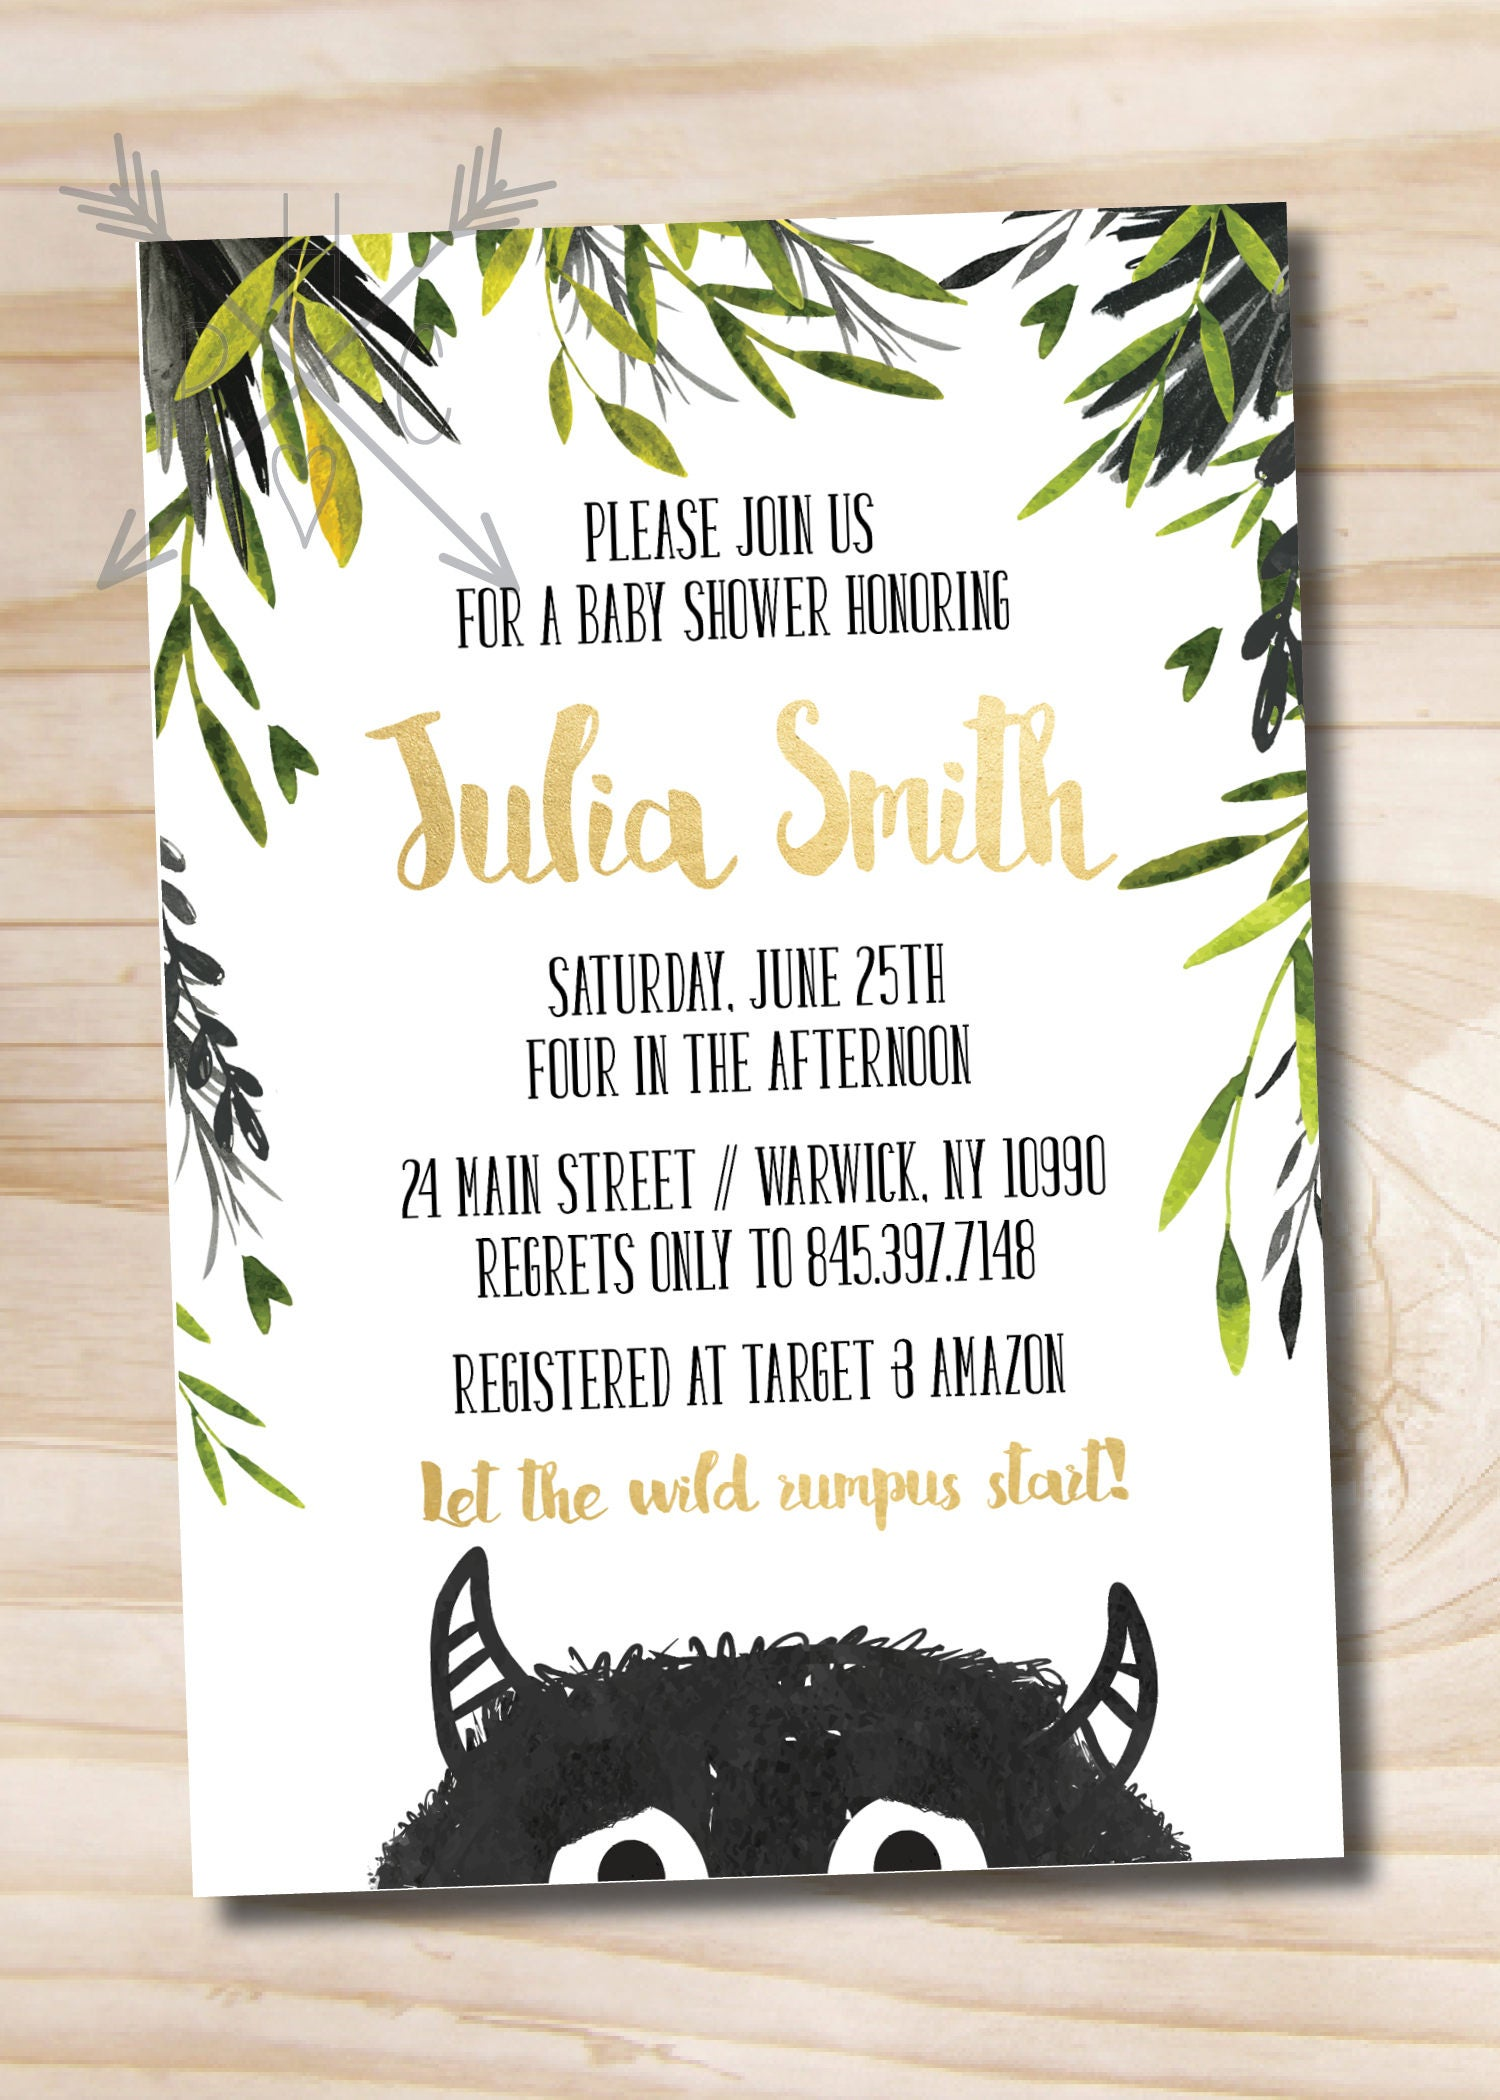 Where the Wild Things Are Baby Shower Invitation // Let the